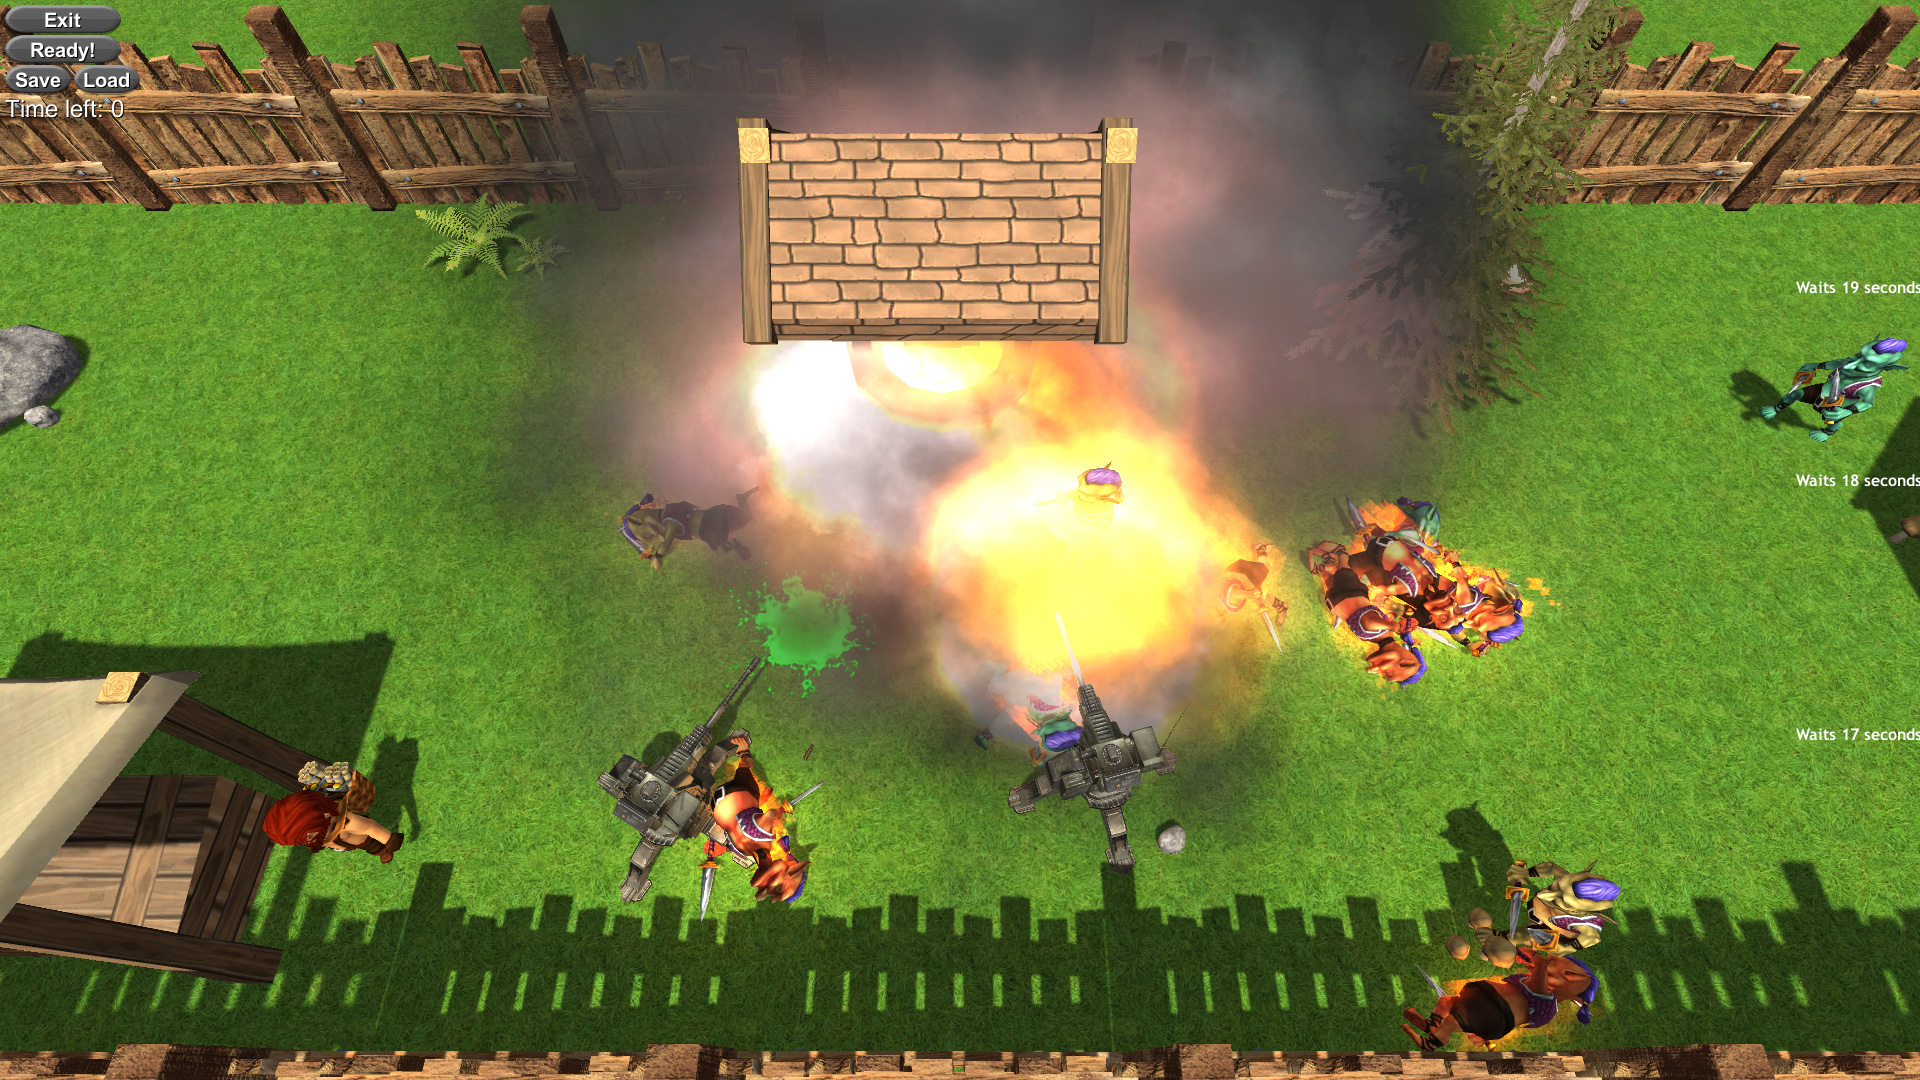 Bomb Defense game is a completely different take on the tower defense genre.